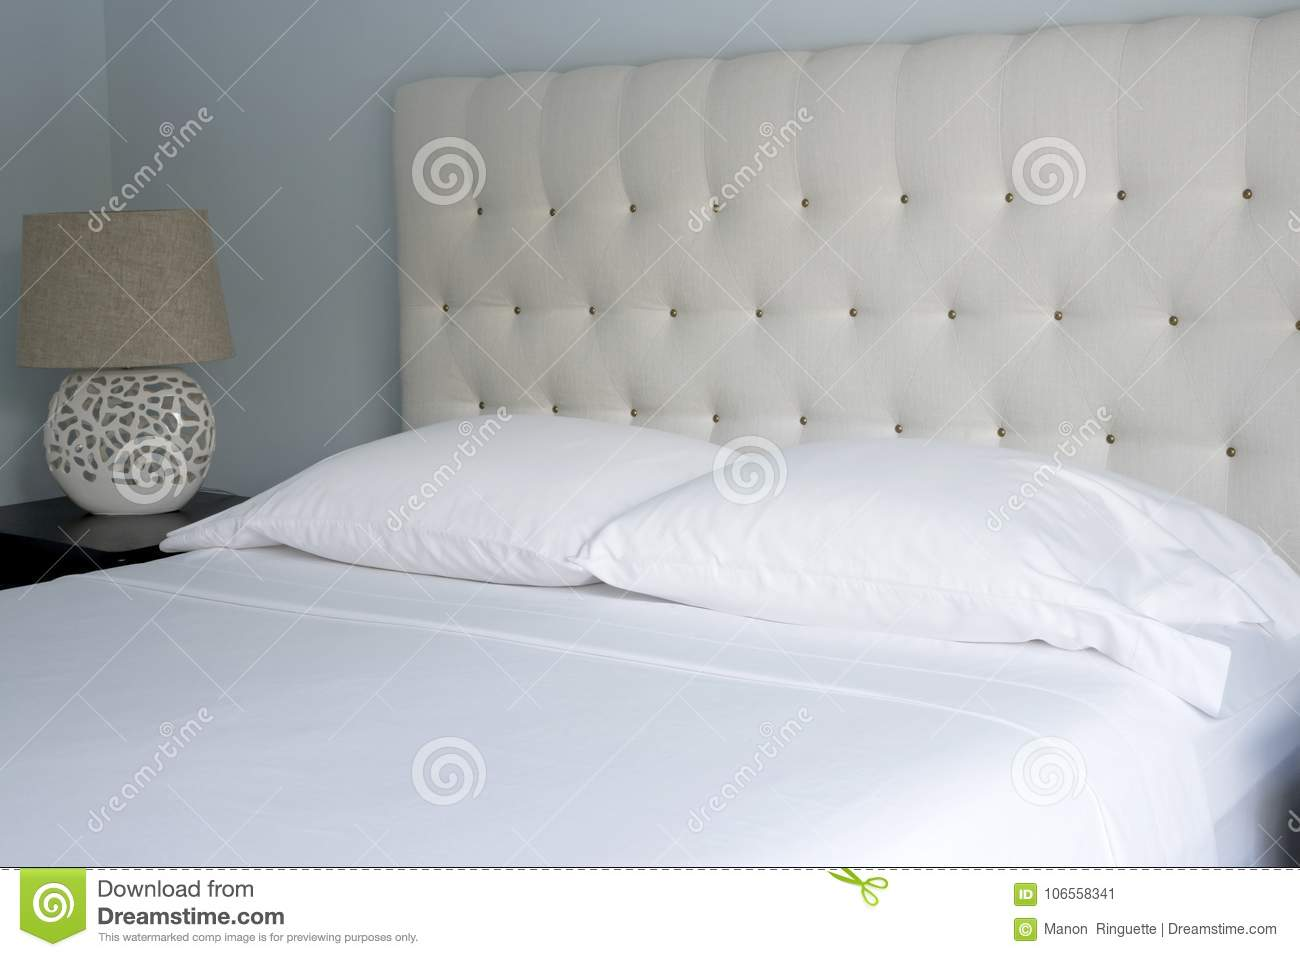 Queen Sized Crisp White Bed Linens Stock Image Image Of Interior Checking 106558341